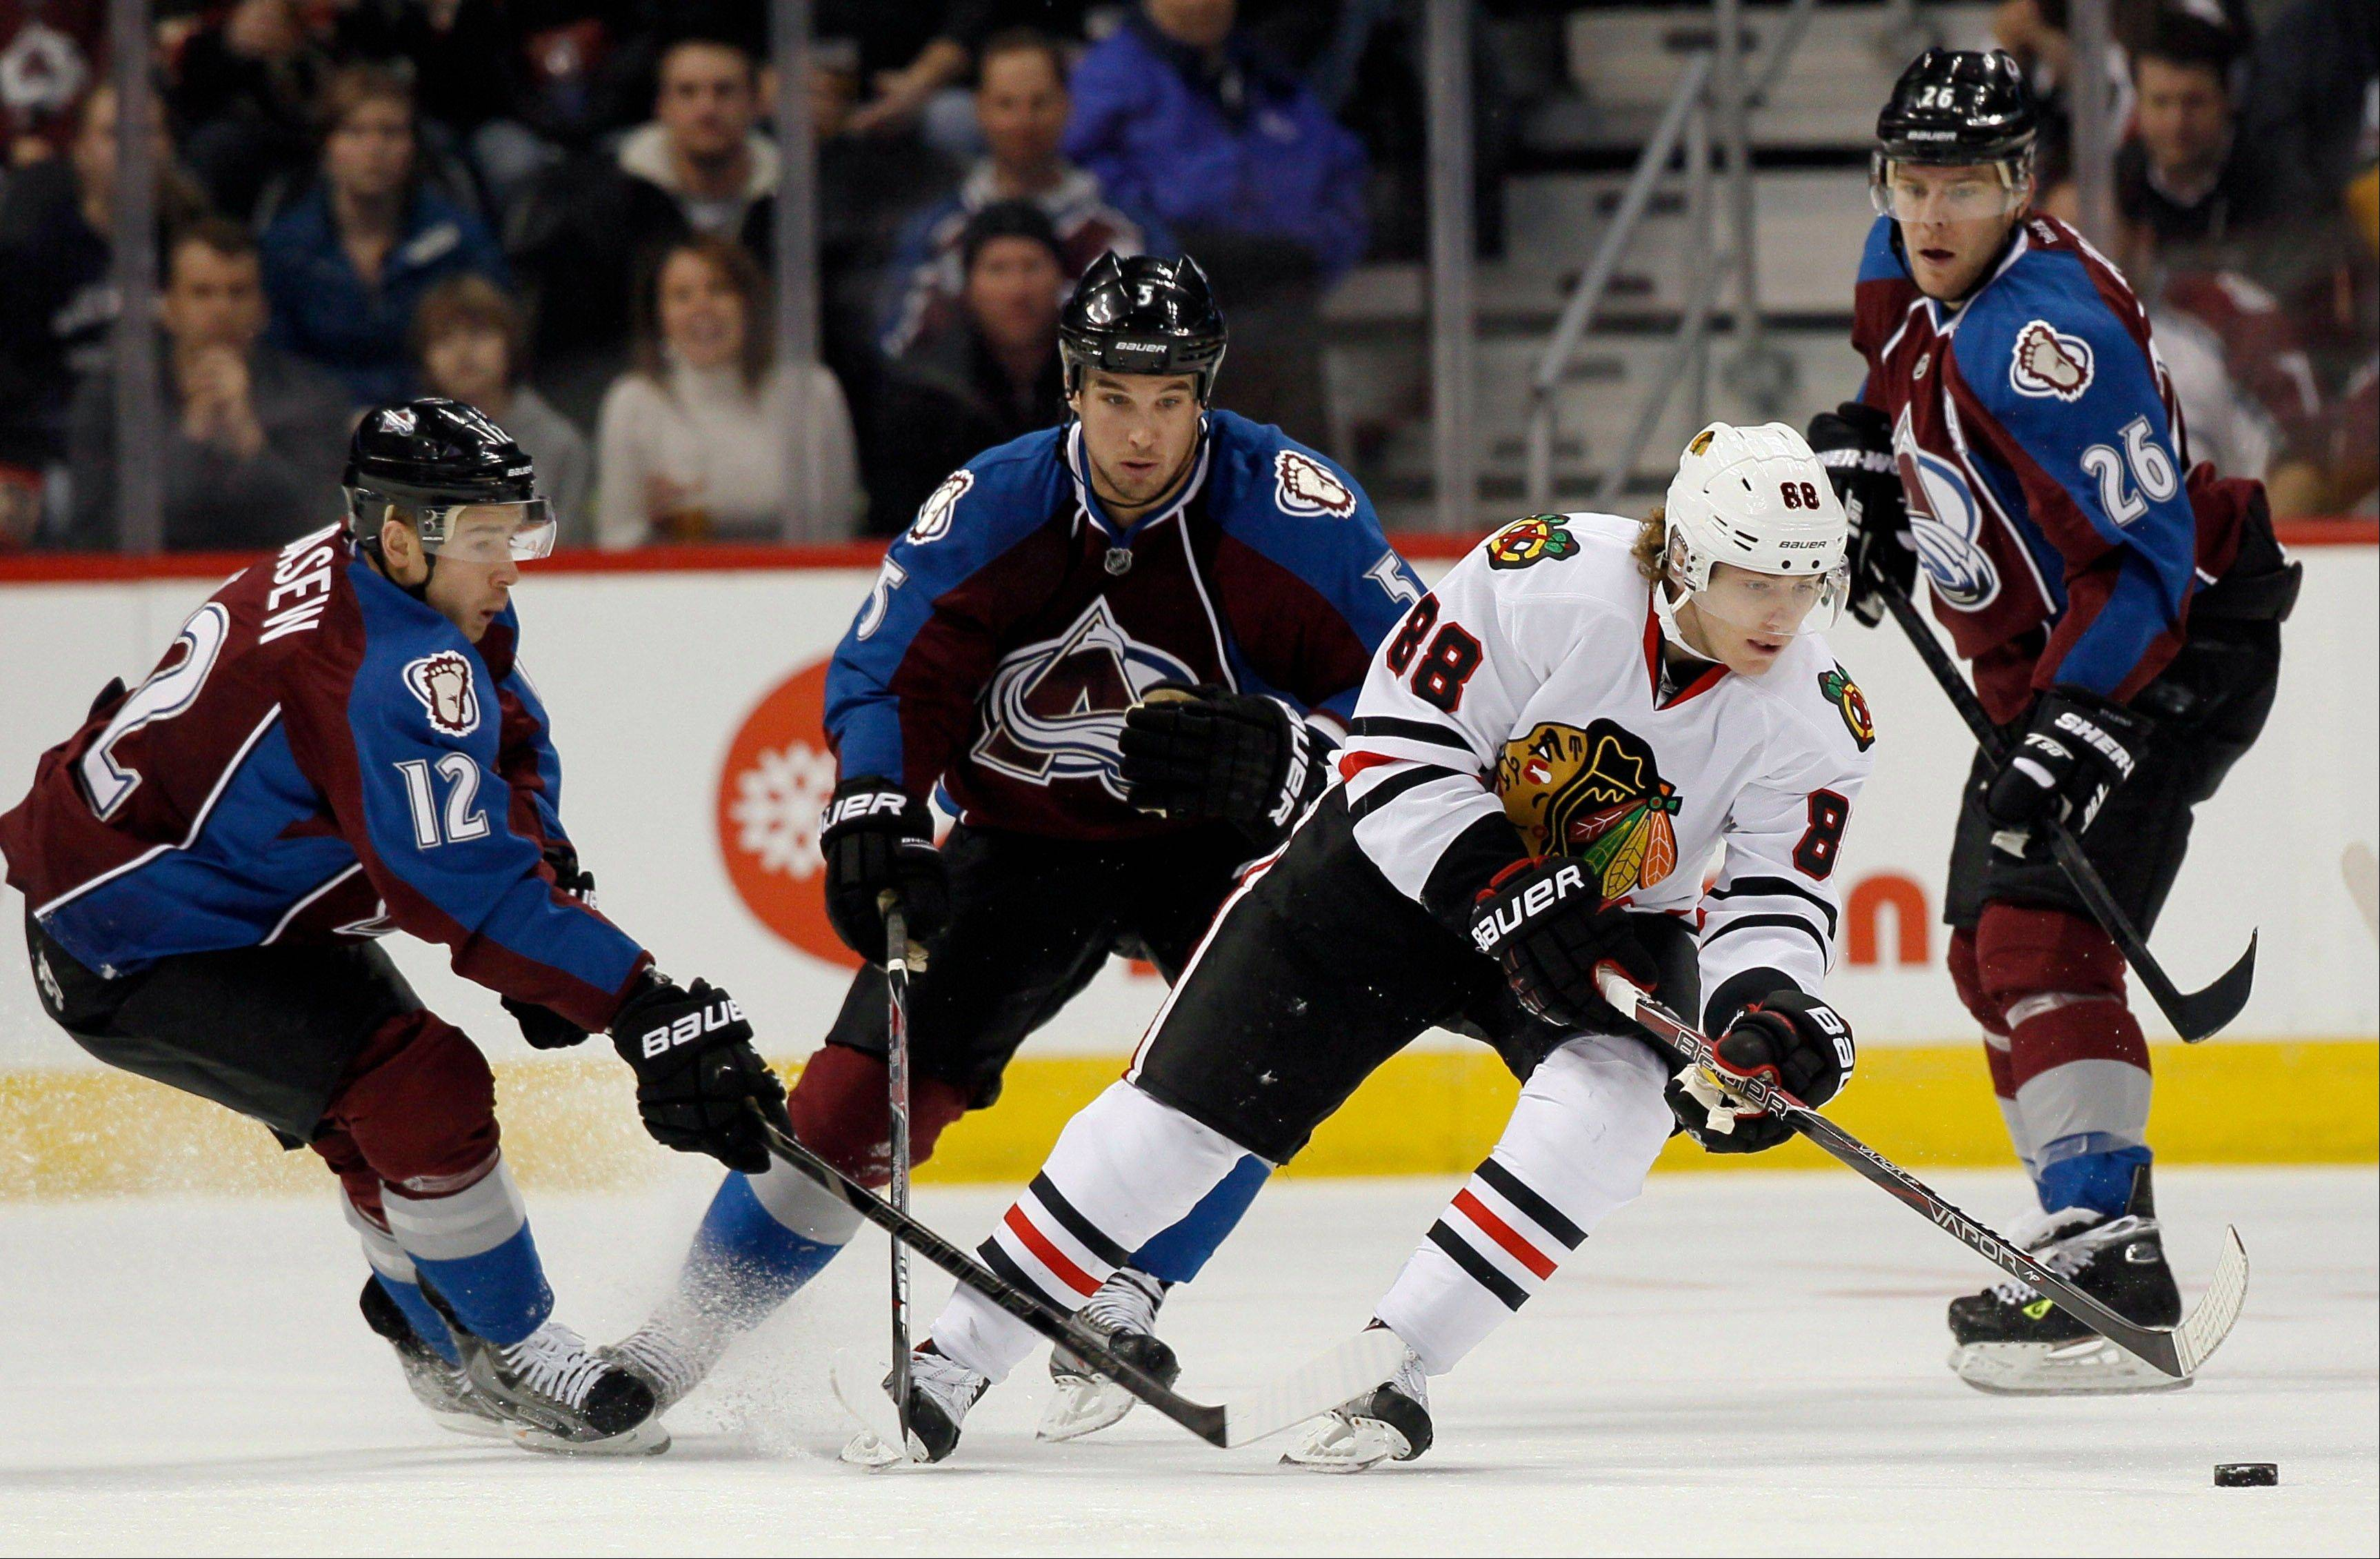 Chicago Blackhawks right wing Patrick Kane, third from left, picks up a loose puck as Colorado Avalanche right wing Chuck Kobasew, far left, defenseman Shane O'Brien, second from left, and center Paul Stastny cover in the first period.